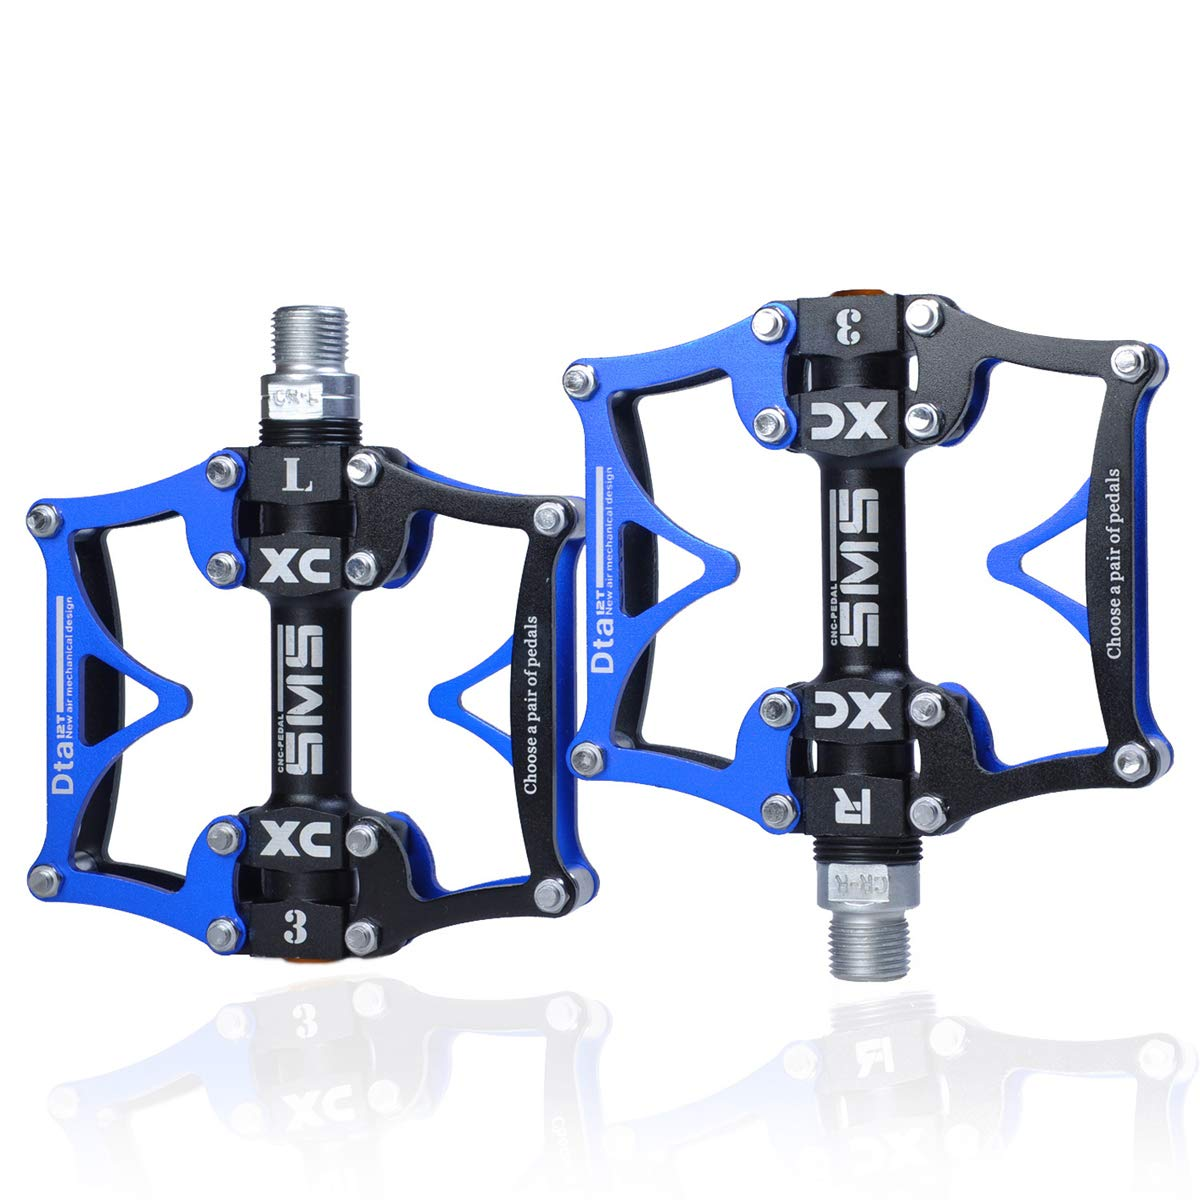 ThinkTop Mountain Bike Pedals Axle 9//16 3 Bearing Platform Pedals Flat Carbon Fiber and Aluminum Sealed Ever Lubricate Bearing for Road BMX MTB Bicycle Cycling